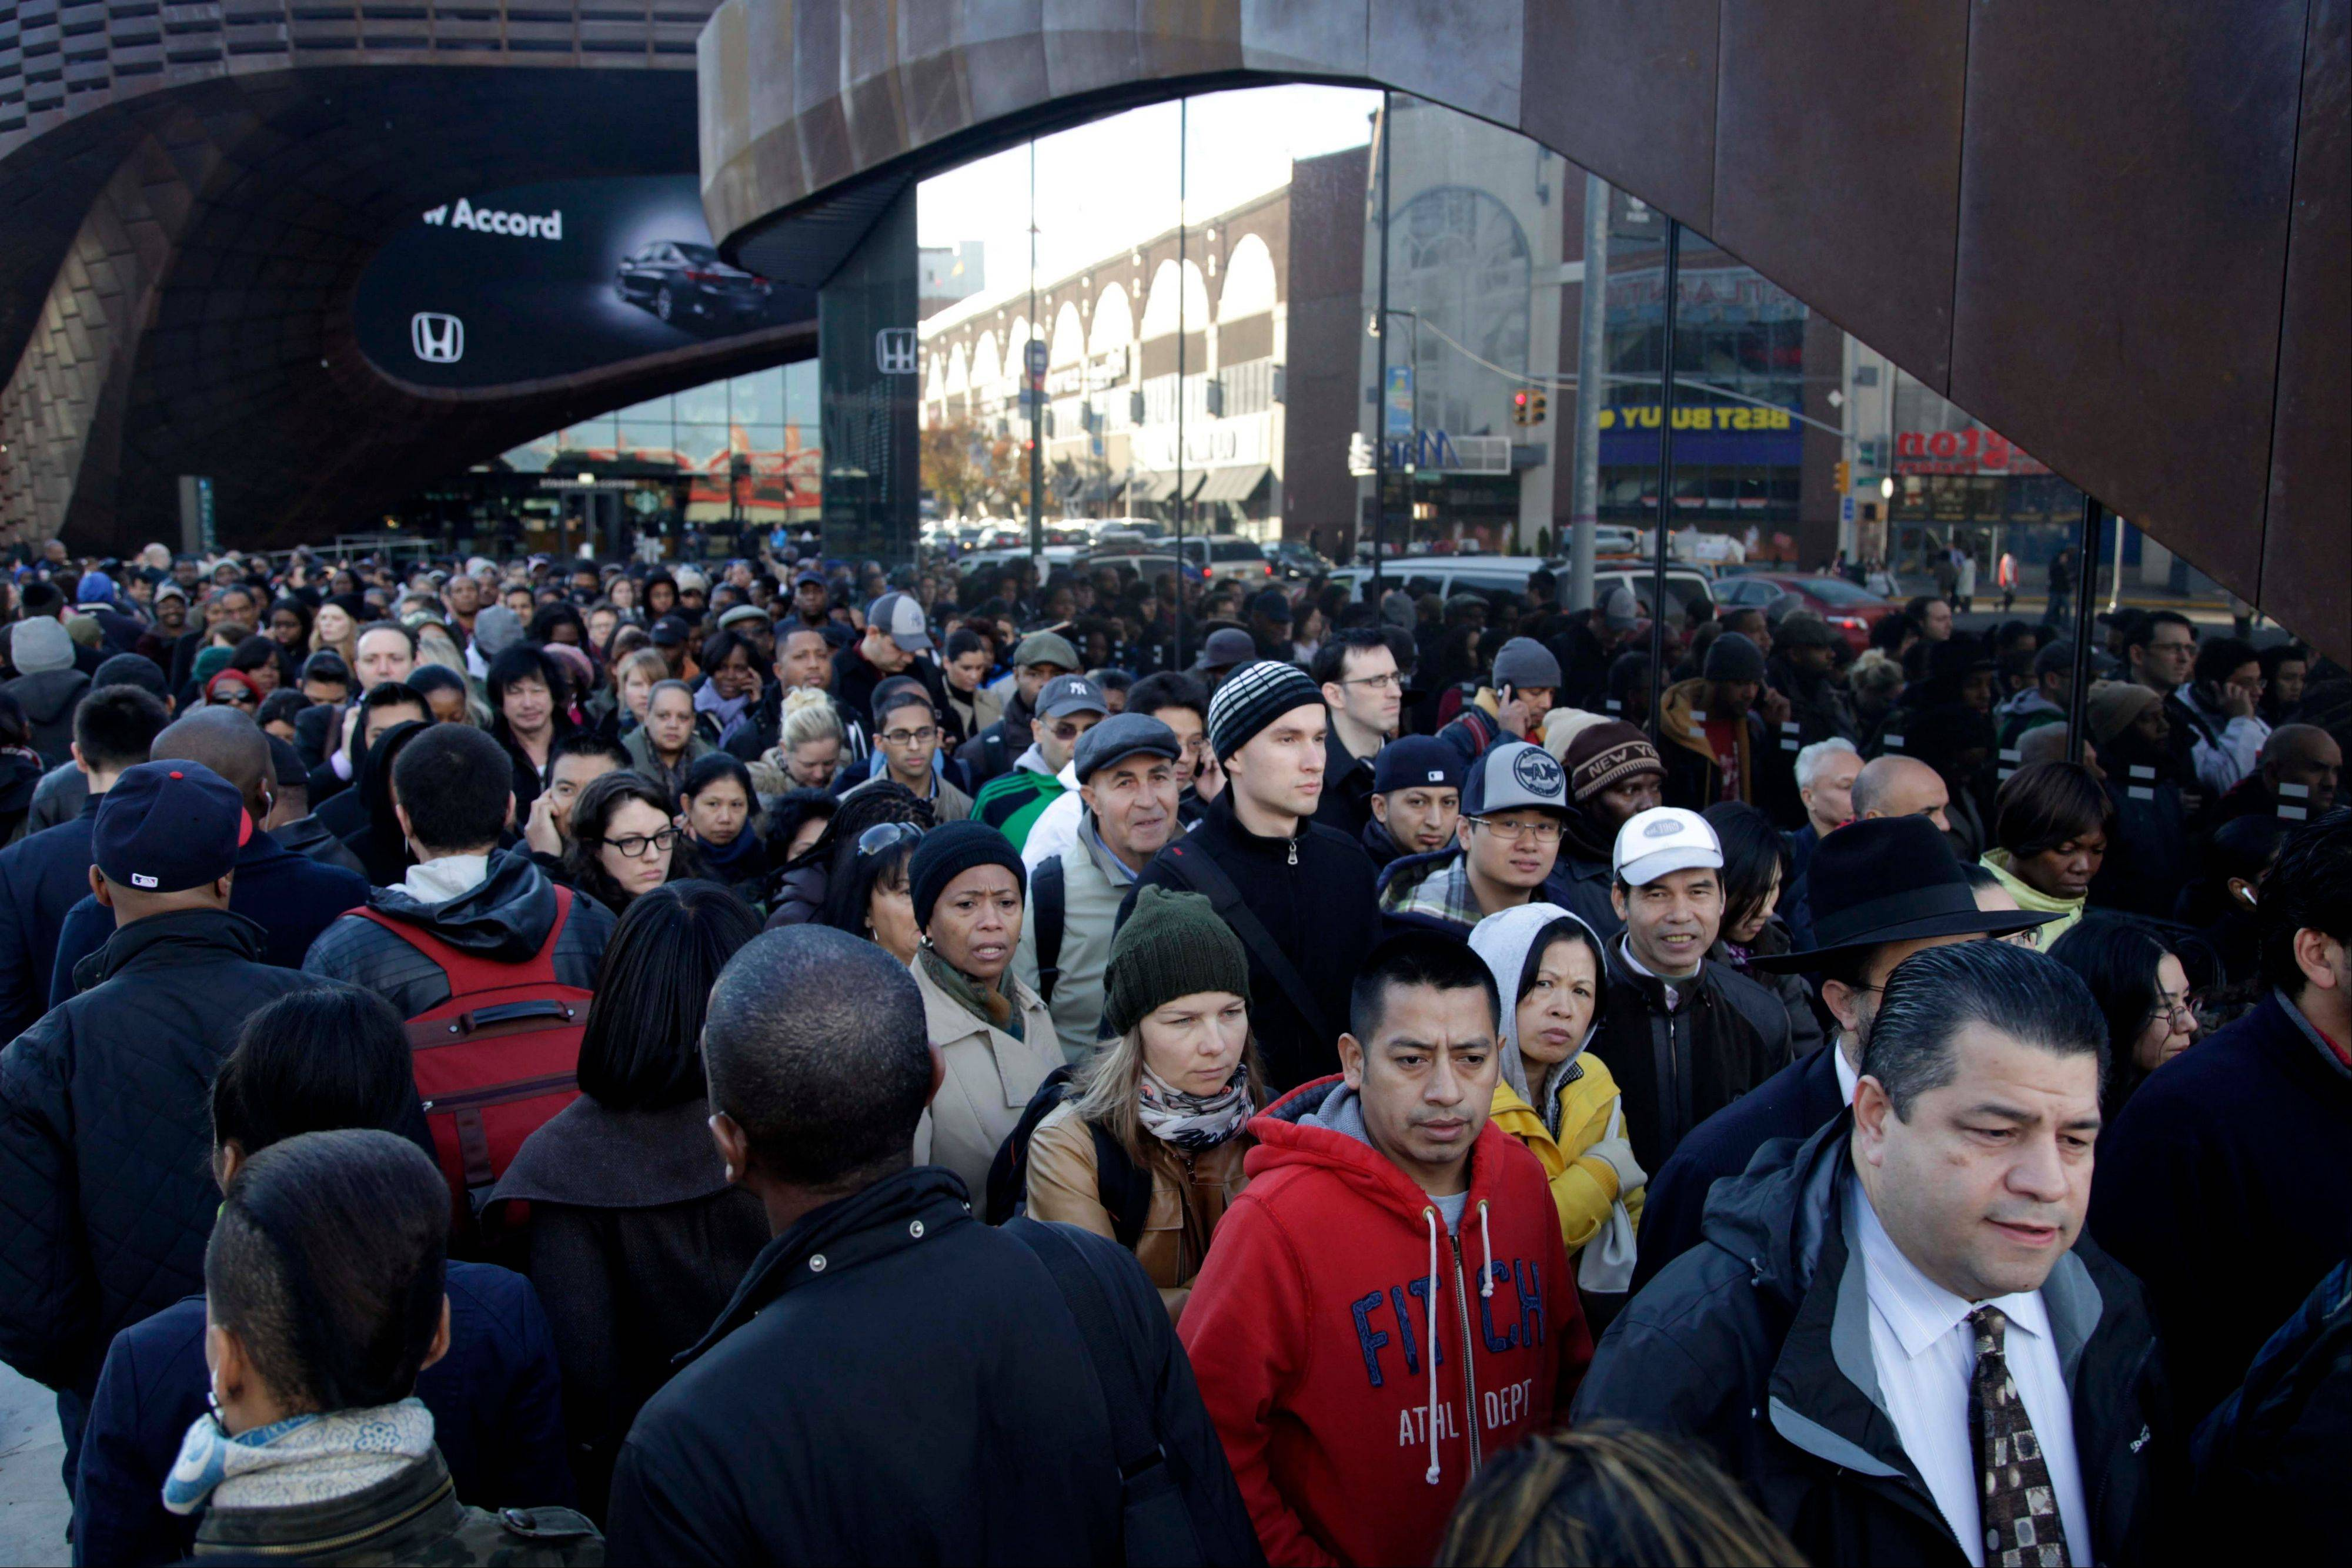 Commuters wait in a line to board buses into Manhattan in front of the Barclays Center in Brooklyn, New York, Thursday. The line stretched twice around the arena and commuters reported wait times of one to three hours to get on a bus.